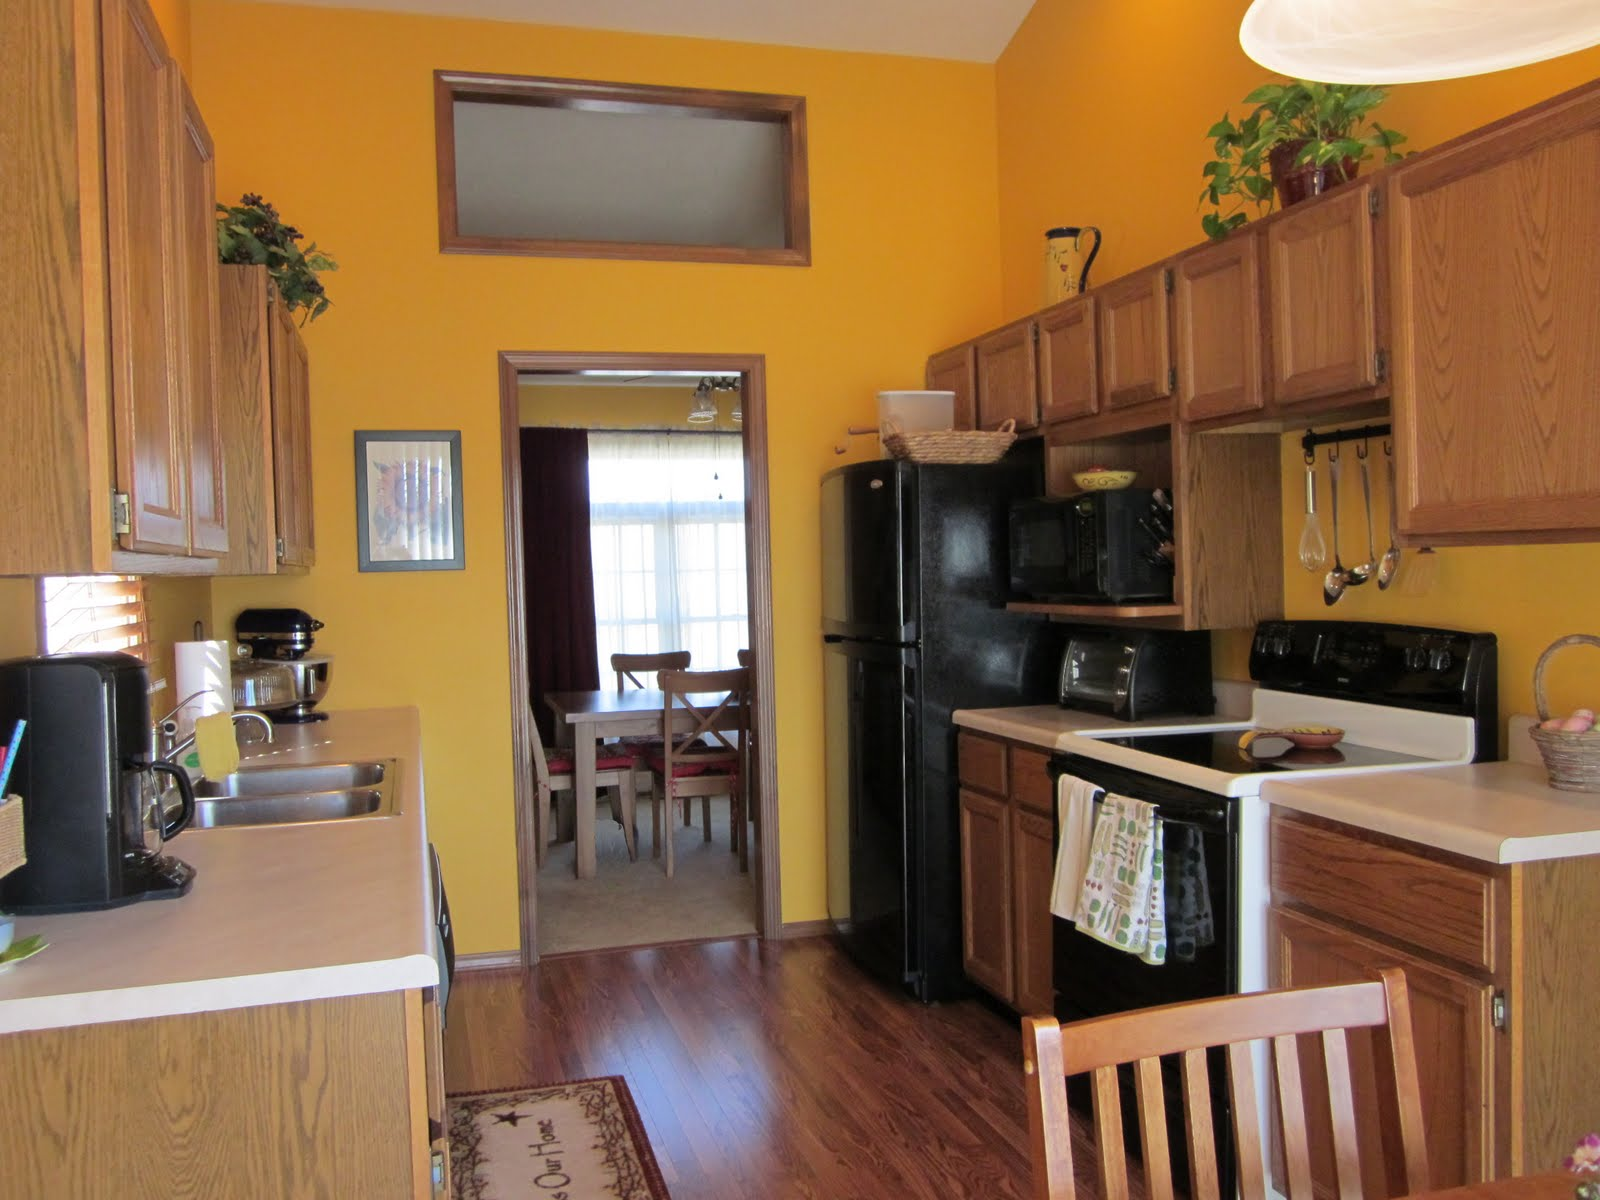 House Kitchen Denbesten Real Estate Bloomington Normal Il Real Estate Agents